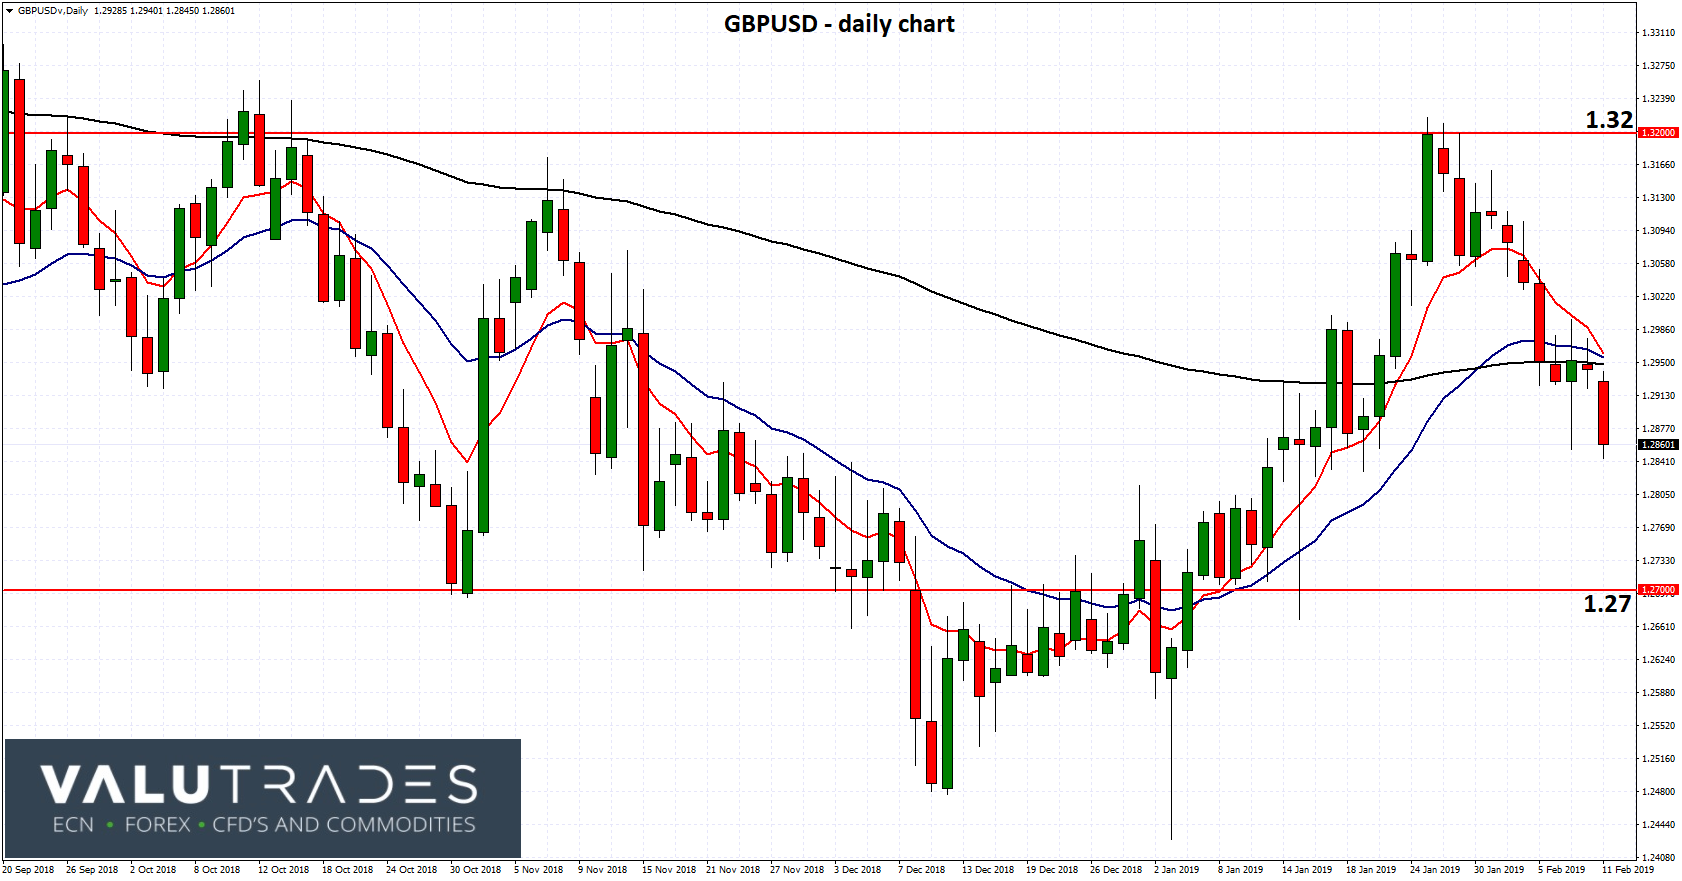 GBPUSD - Eyes off Support at 1.27 on BOE Outlook